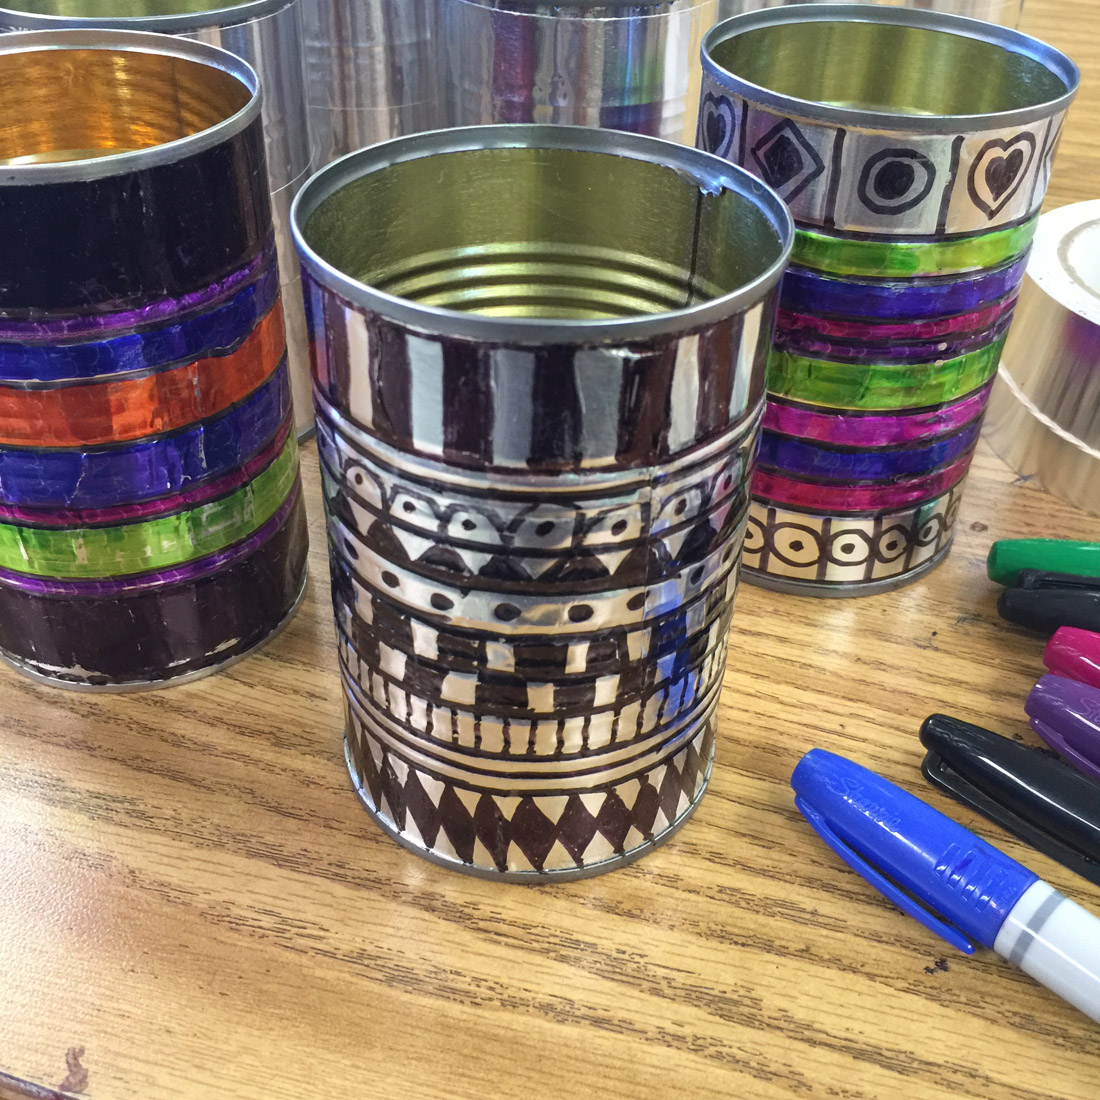 Recycled Crafts From My Sharpie Book Art Projects For Kids